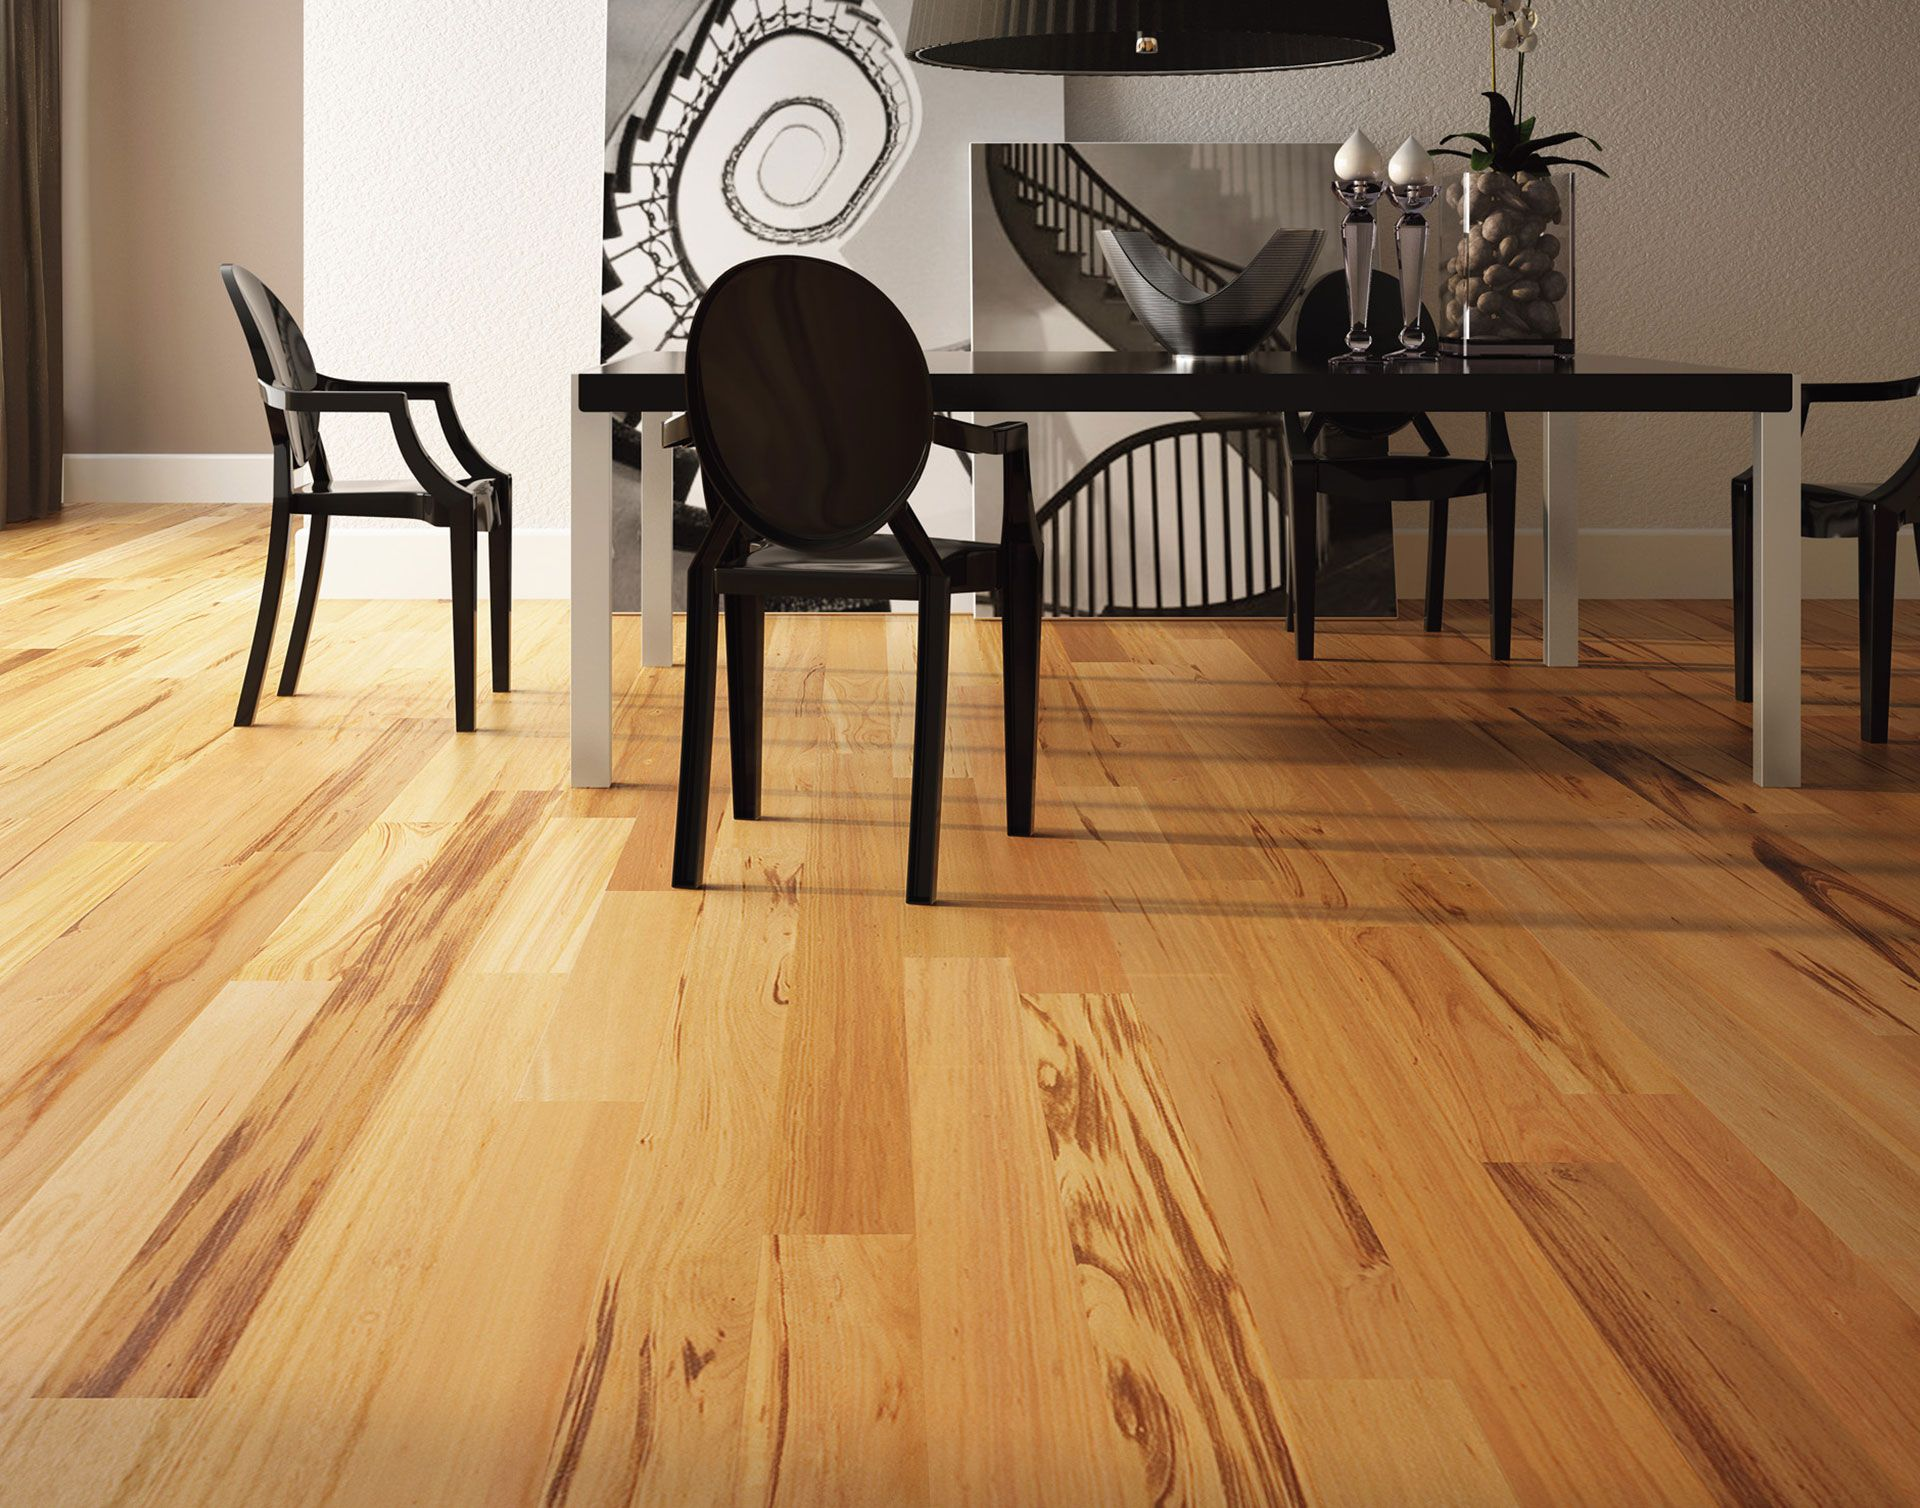 Engineered Hardwood Flooring For Interior Floor Decorating Ideas Wall Decor With Dark Wood Chairs And Black Table Plus